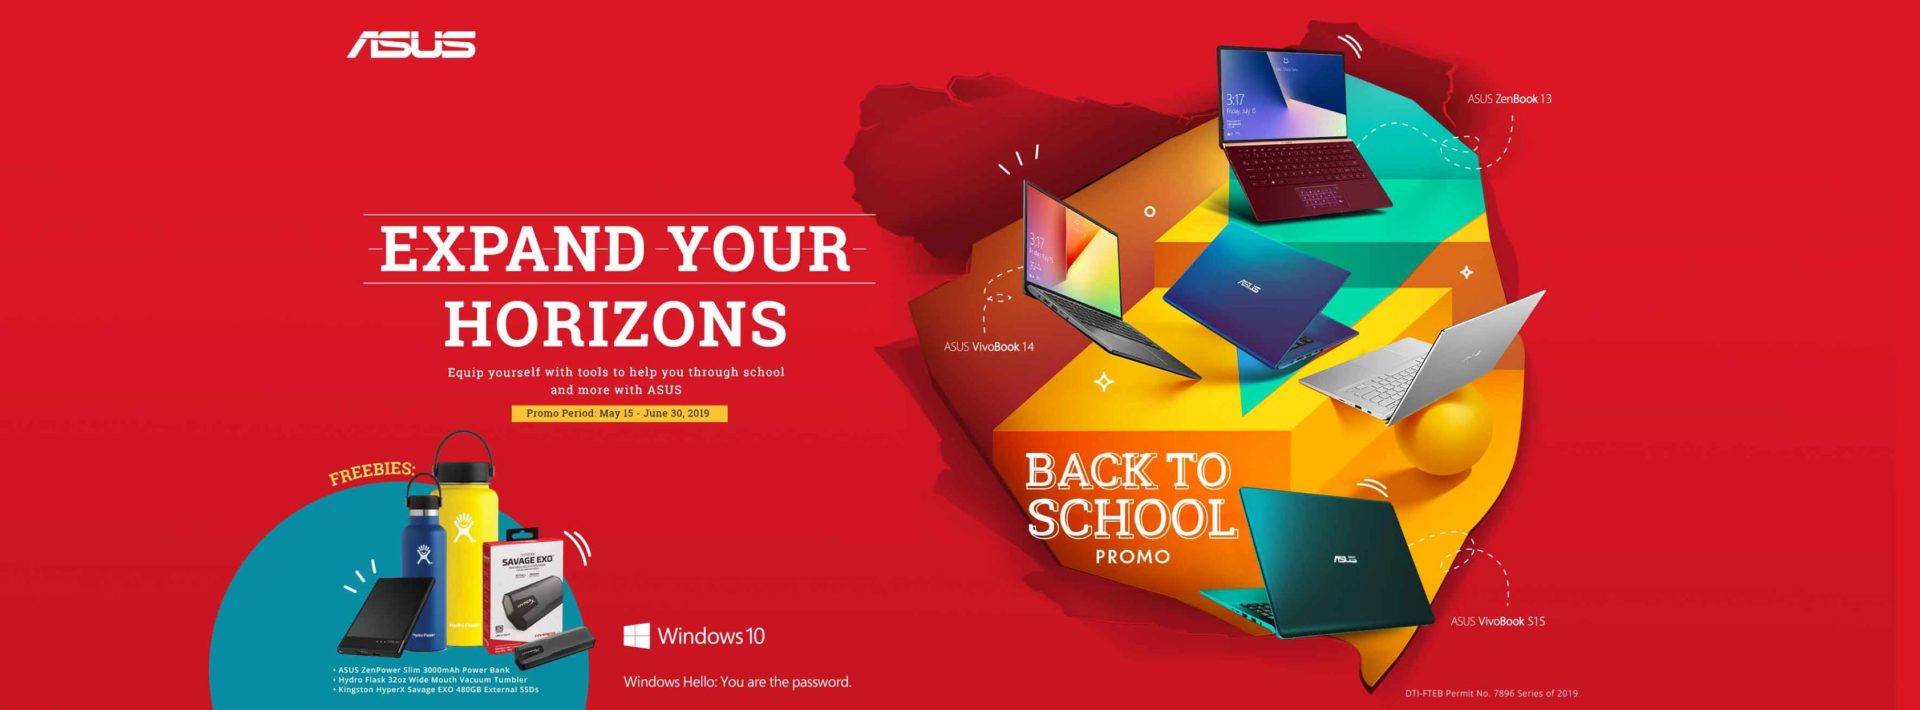 asus back to school promo, ASUS Announces its Back to School Deals!, Gadget Pilipinas, Gadget Pilipinas